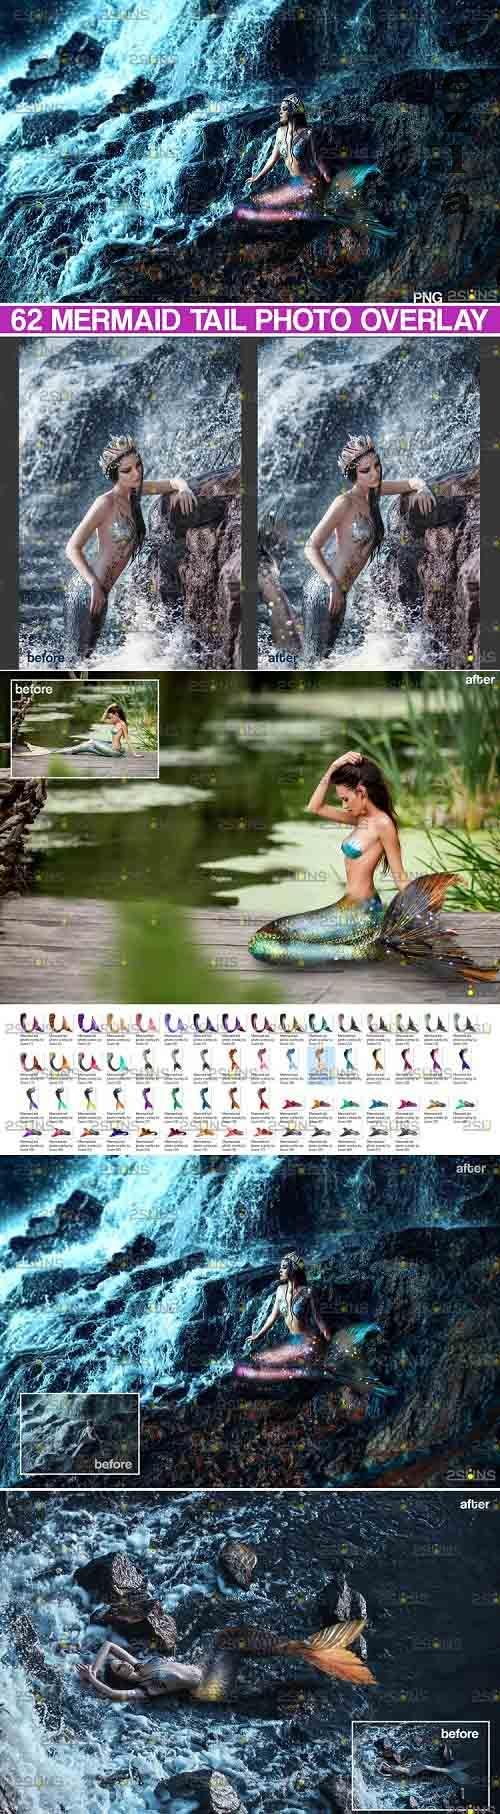 62 Mermaid tail, tails, overlays, Clipart, PNG - 735885